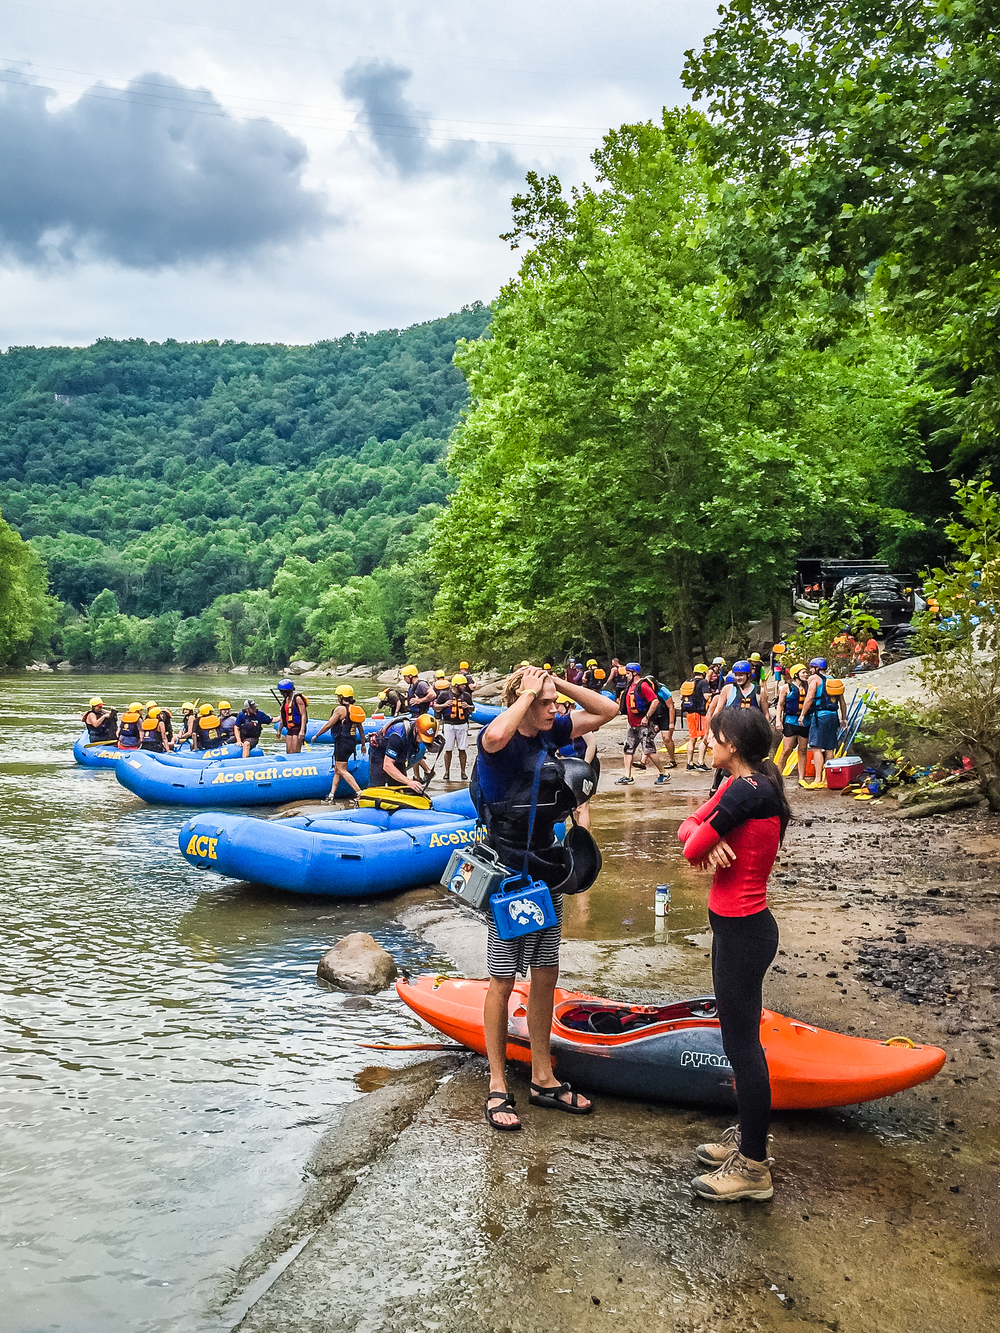 Rafting in New River Gorge, West Virginia